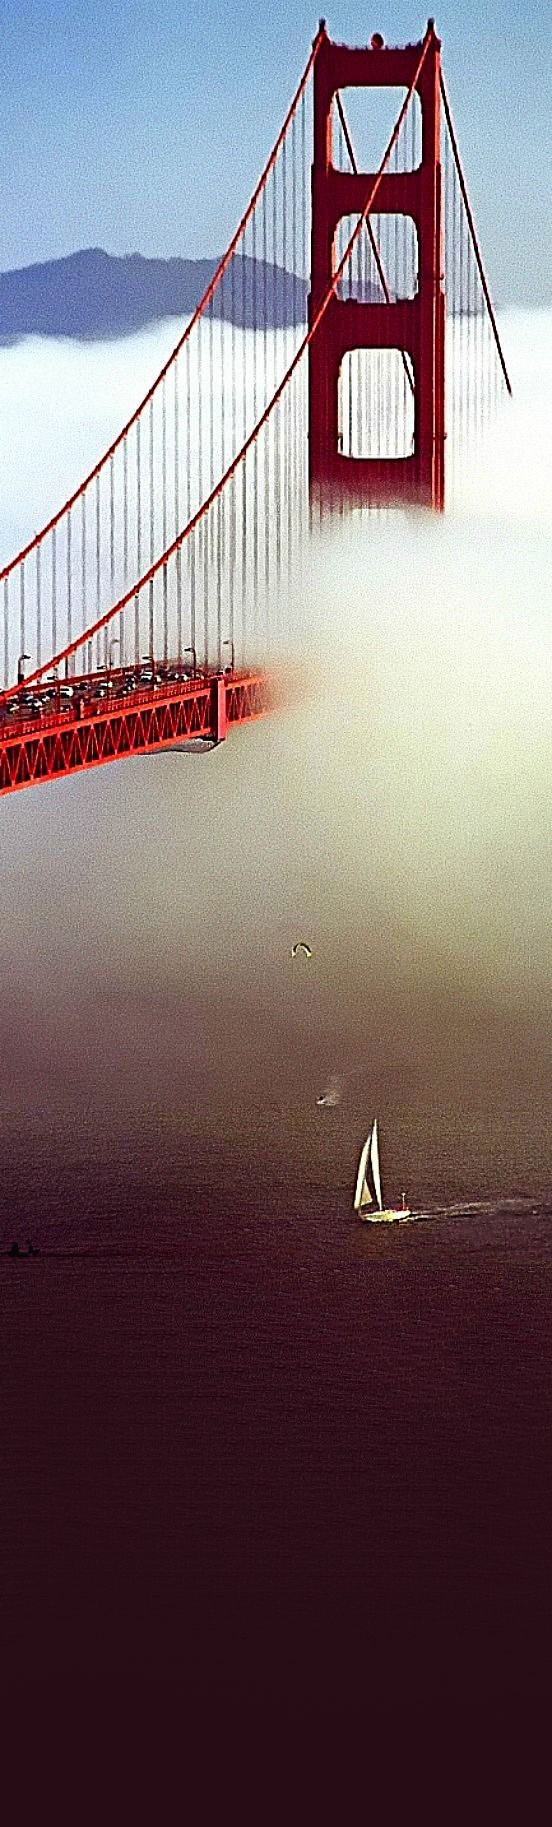 ღღ  ♥ San Francisco Golden Gate bridge